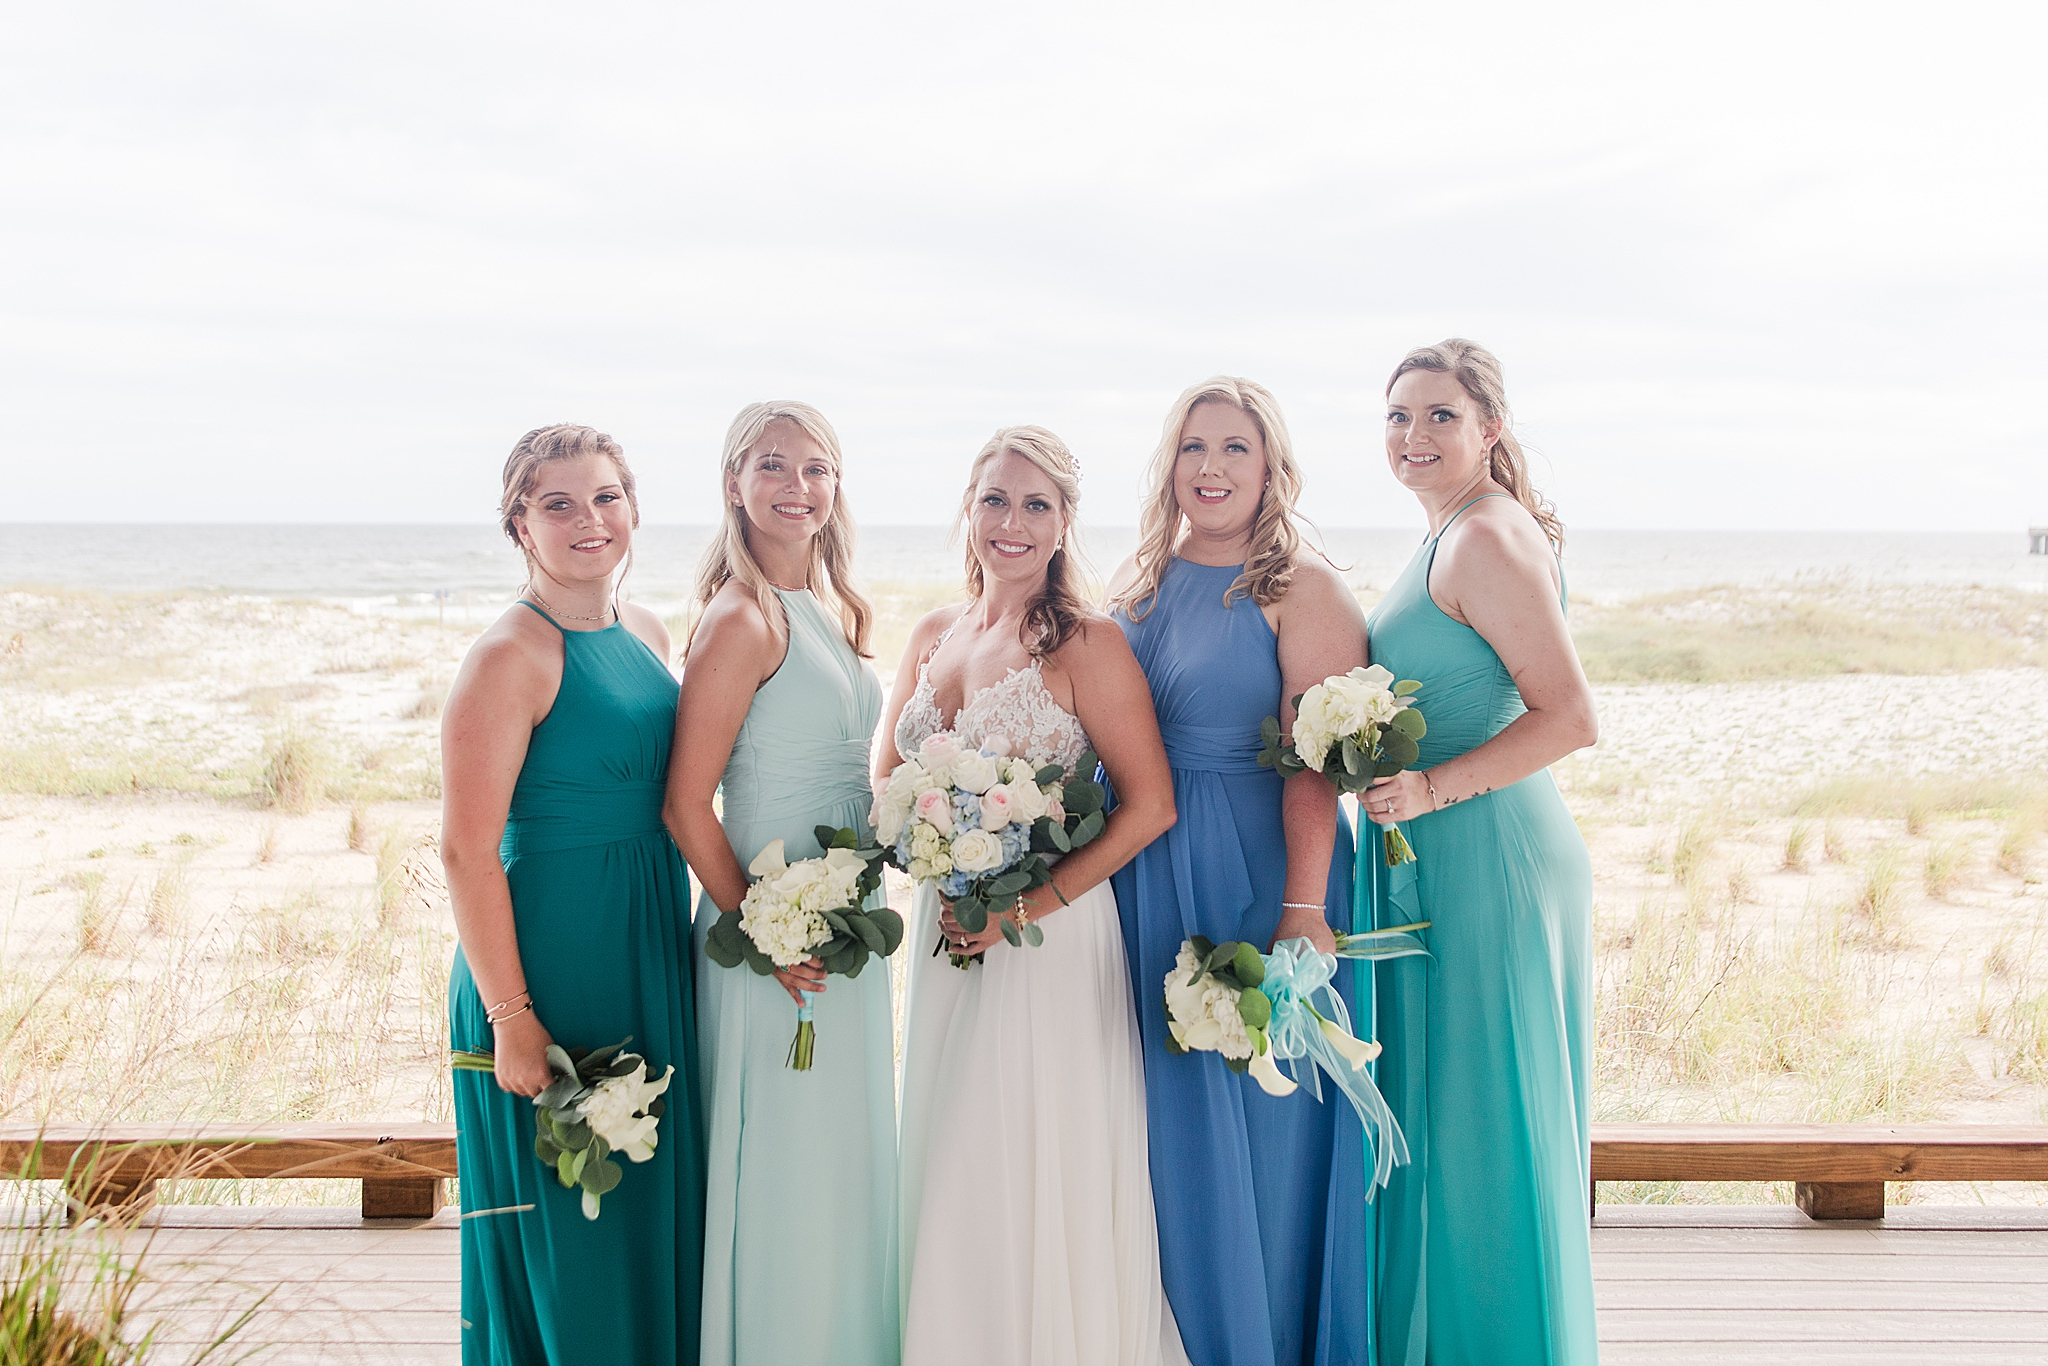 bride poses with bridesmaids in blue and green gowns